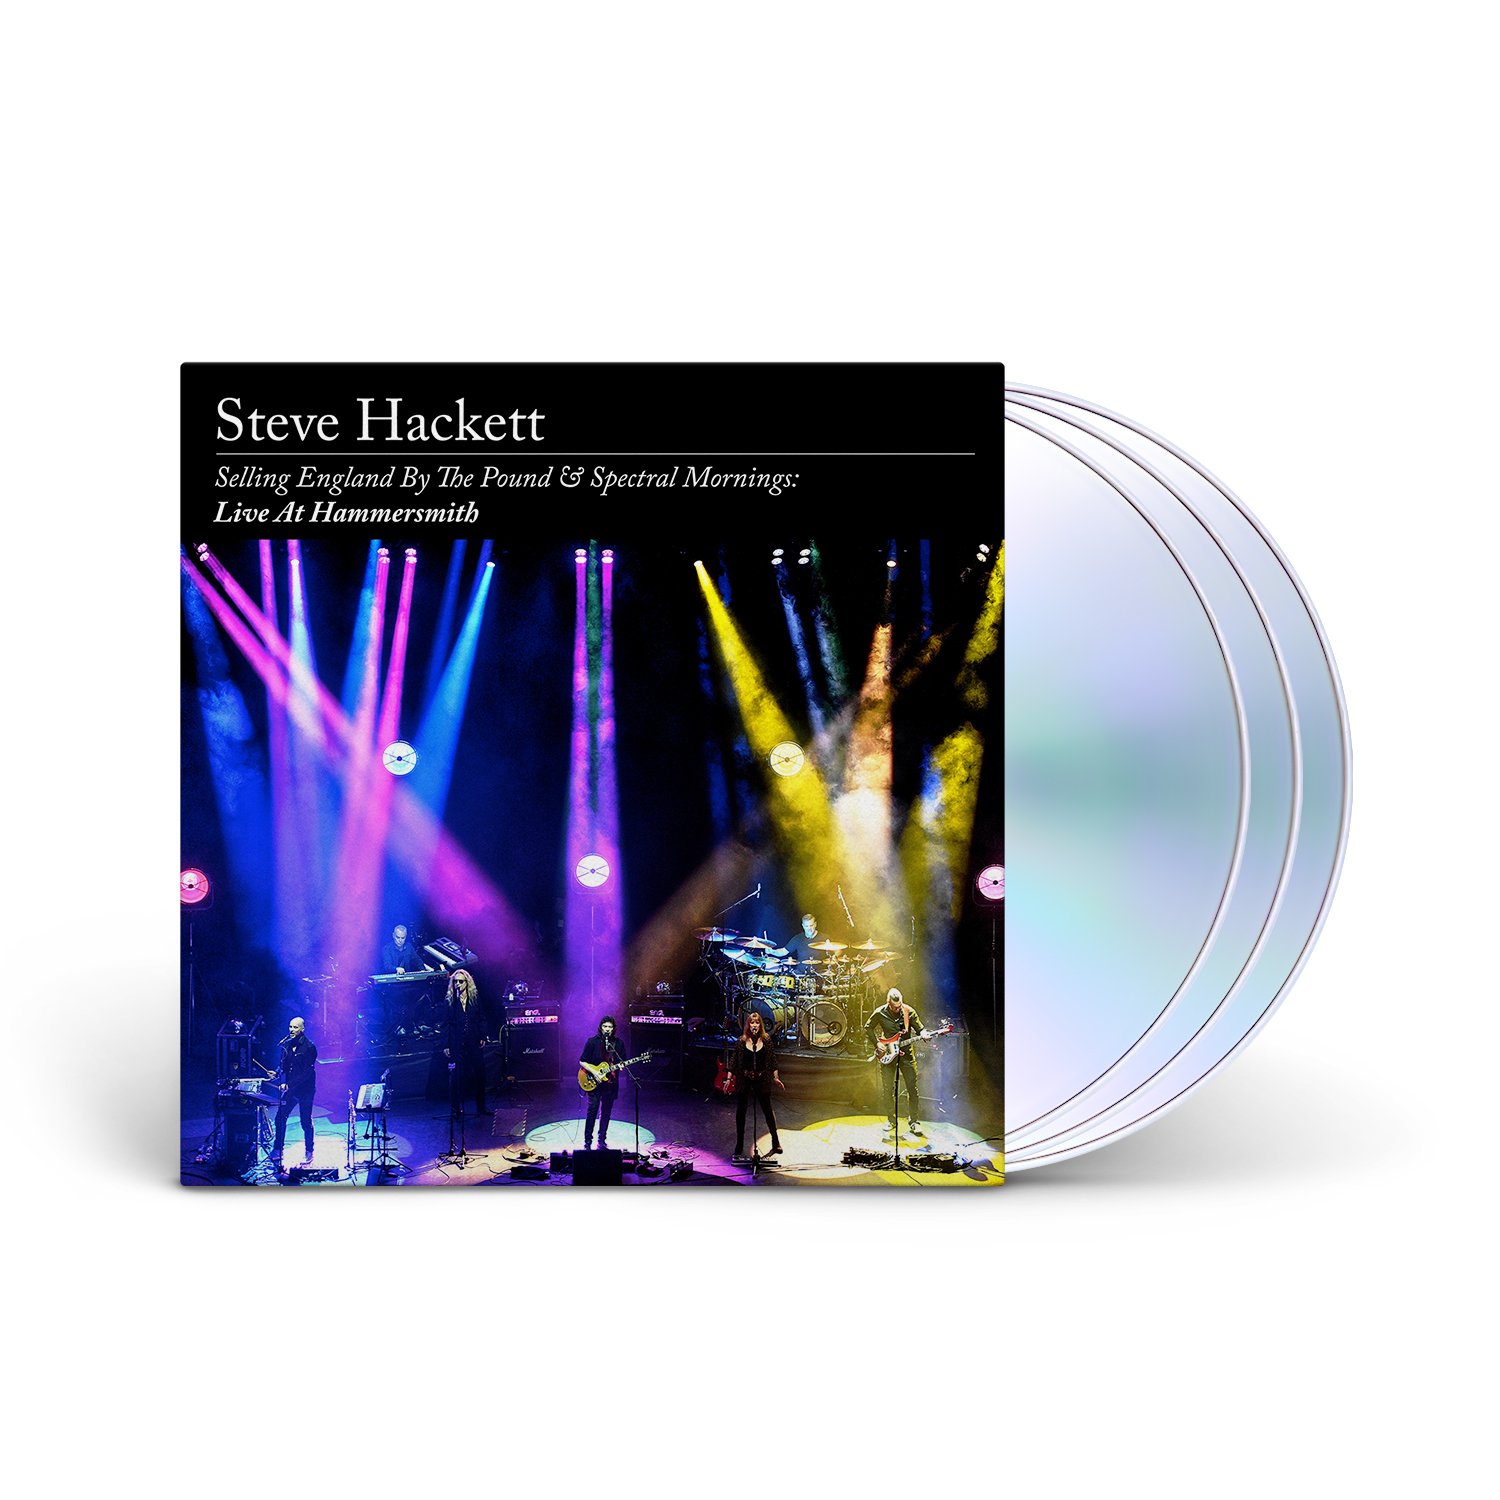 Steve Hackett - Selling England By The Pound & Spectral Mornings: Live At Hammersmith Digipak 2 CD + BluRay + Digital Download